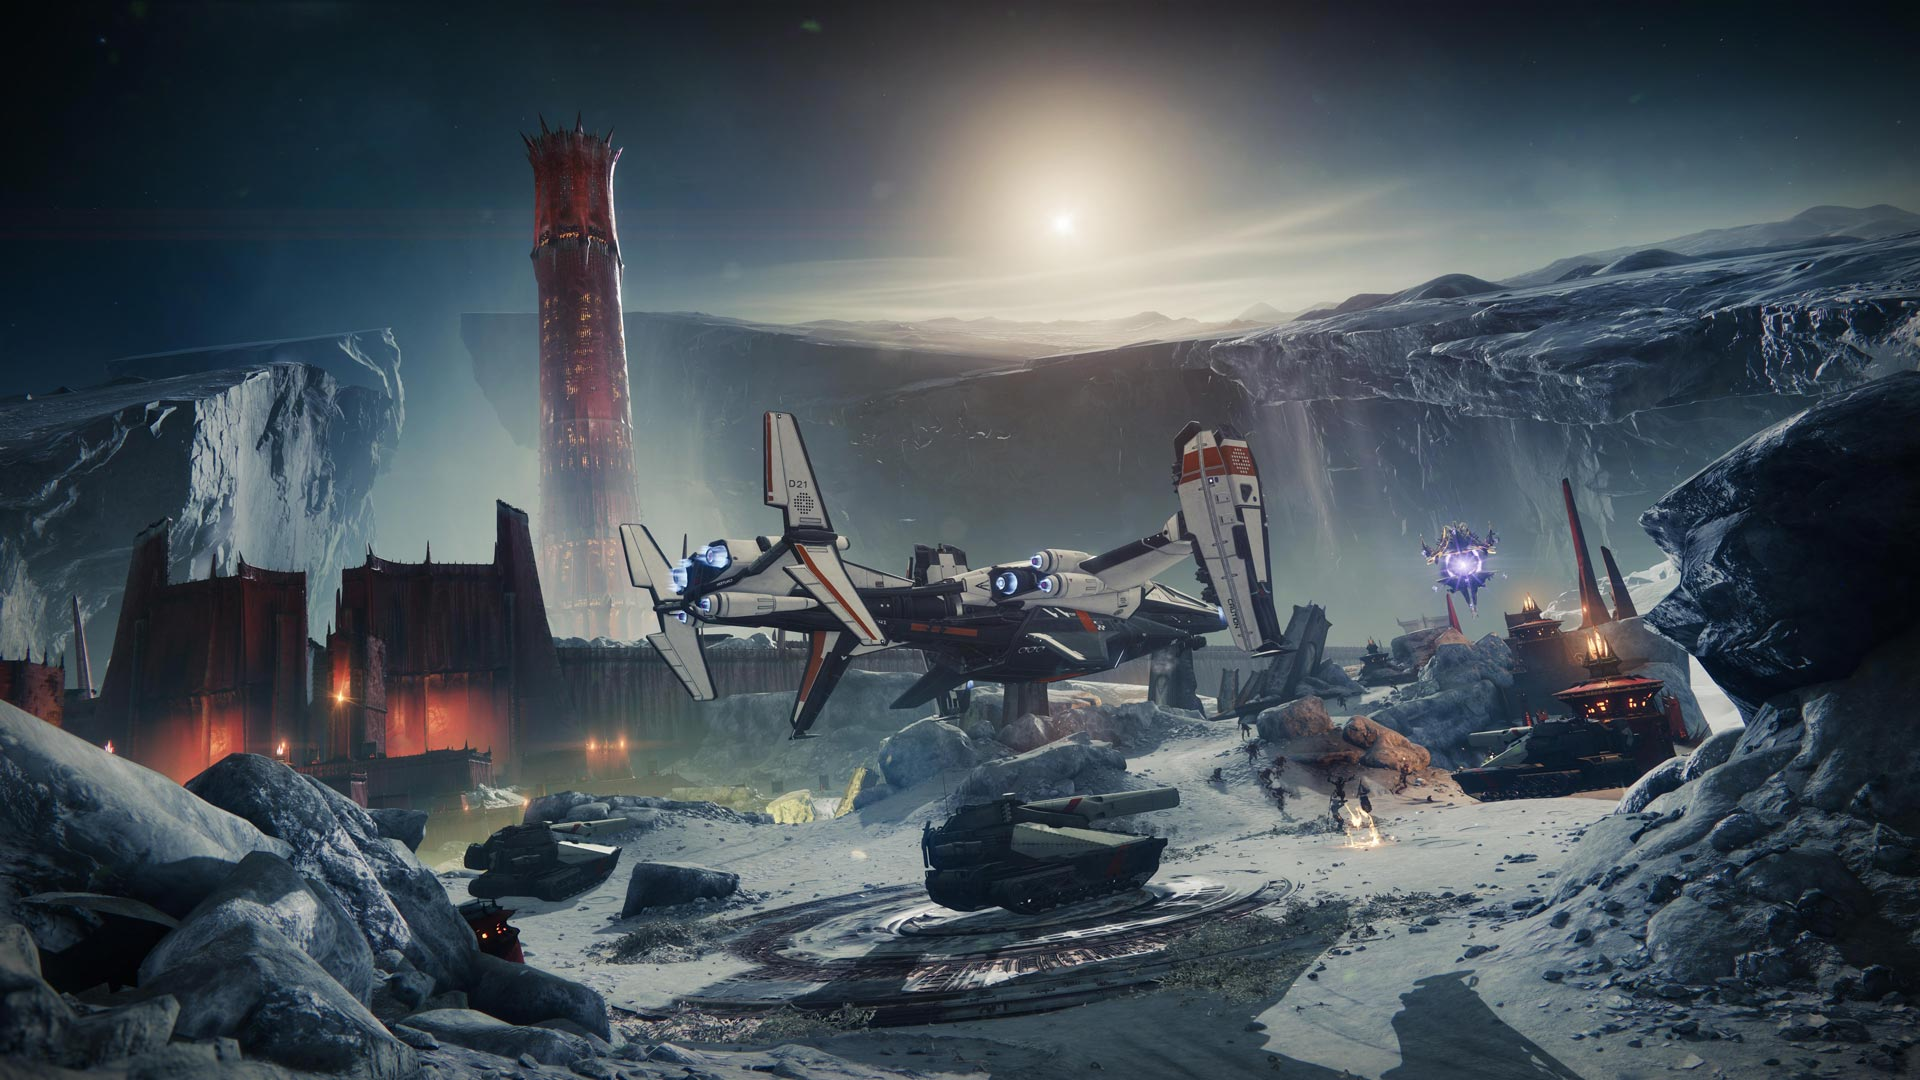 Destiny 2: Shadowkeep base on the moon